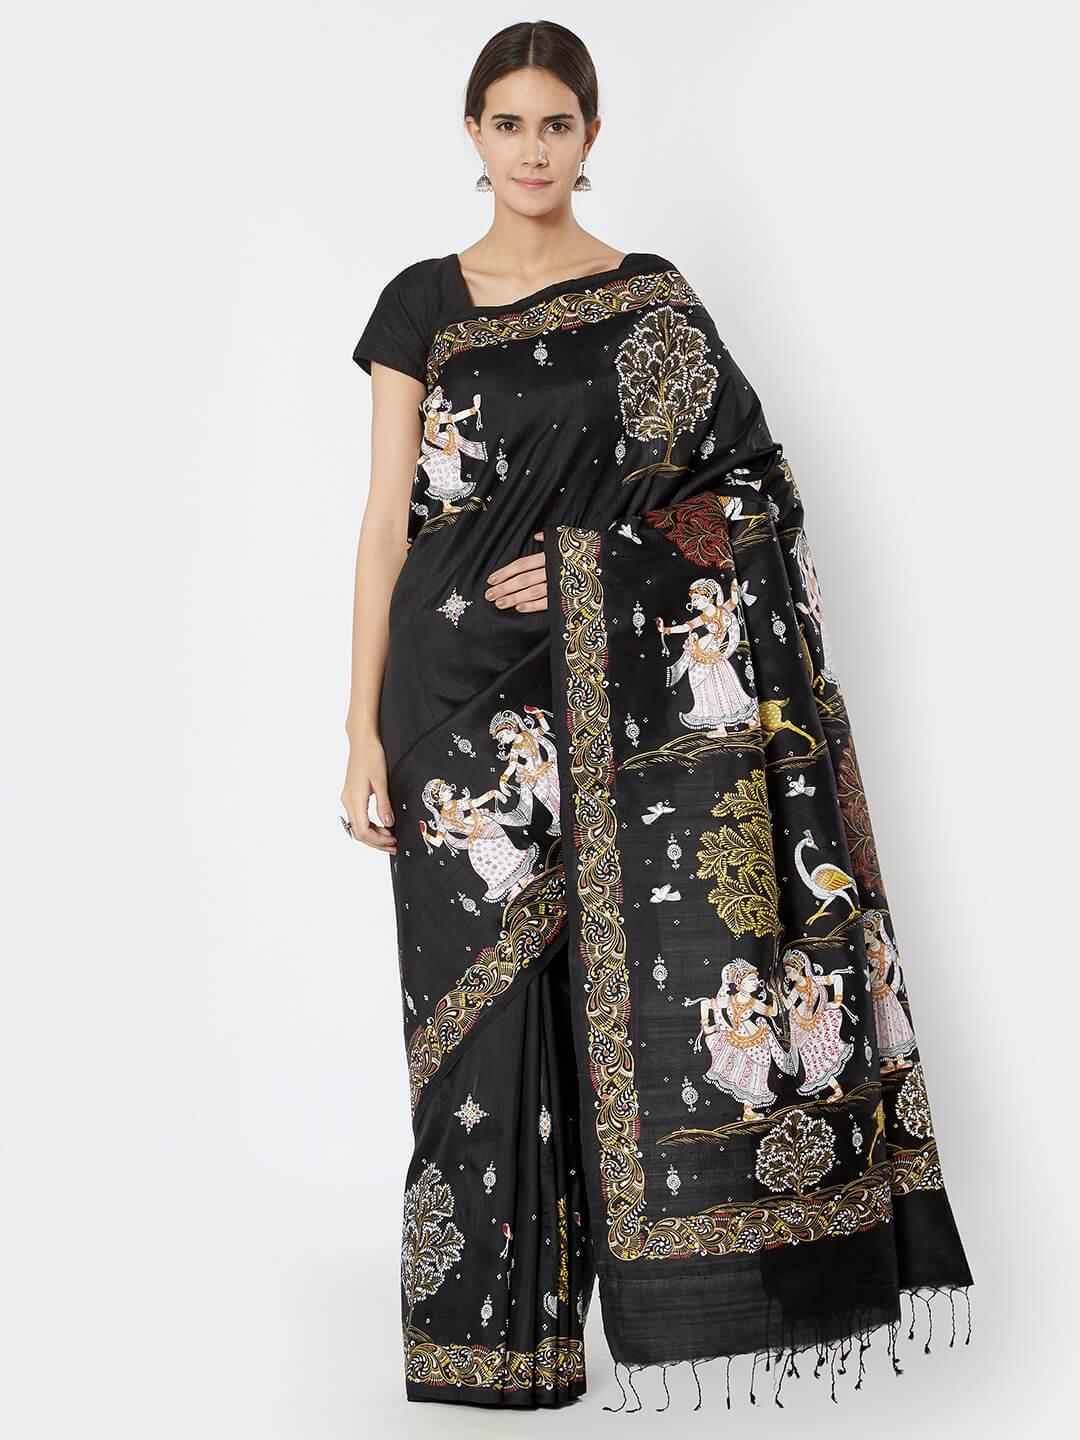 CraftsCollection.in - Black Tussar Silk Saree with Pattachitra Motifs